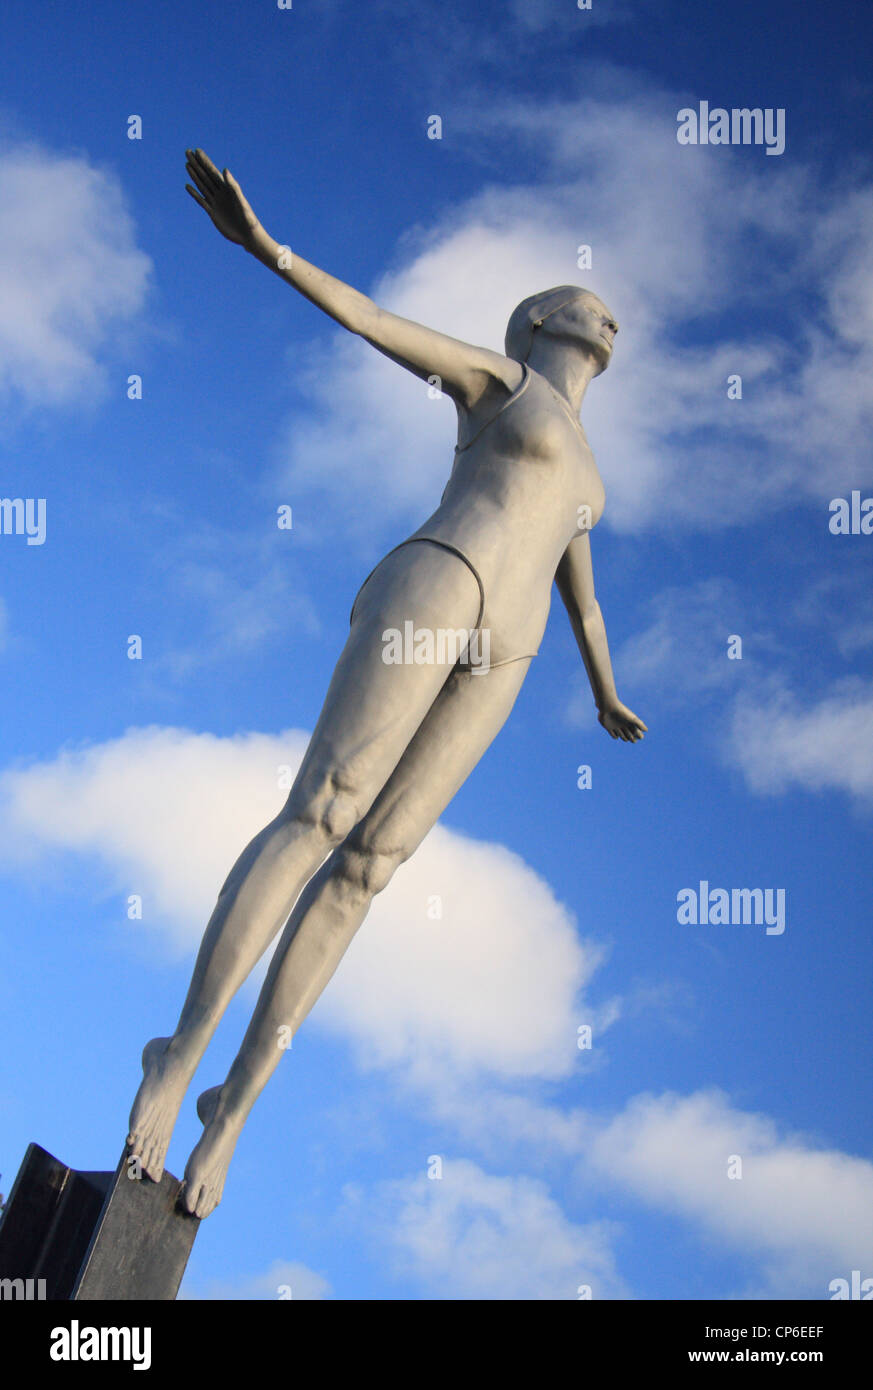 The Diving Belle sculpture on Scarborough Harbour, Scarborough, North Yorkshire, UK - Stock Image